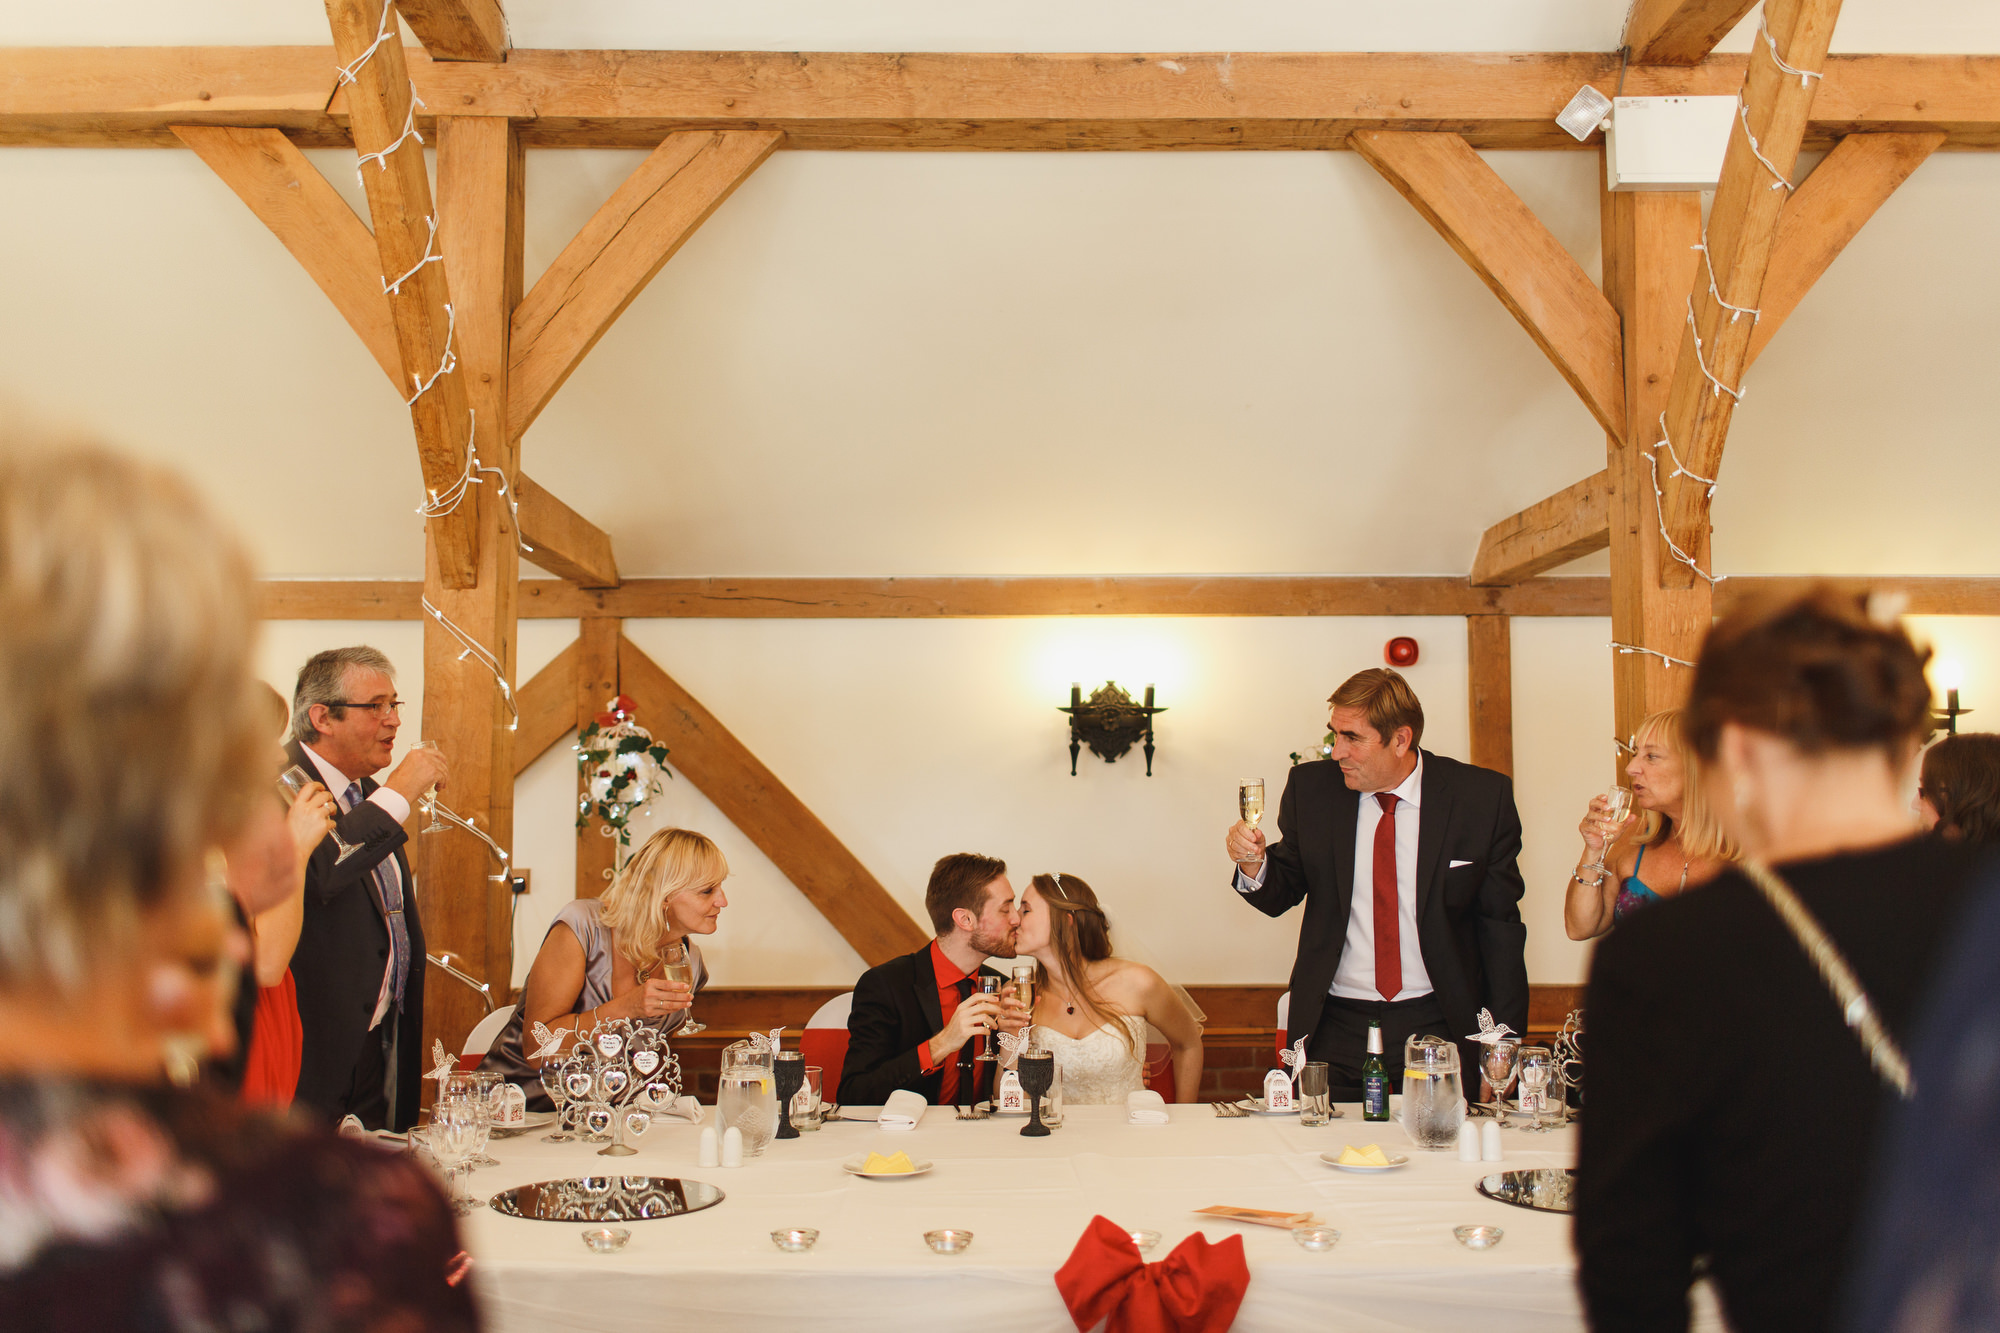 barn-wedding-photography-cheshire-44